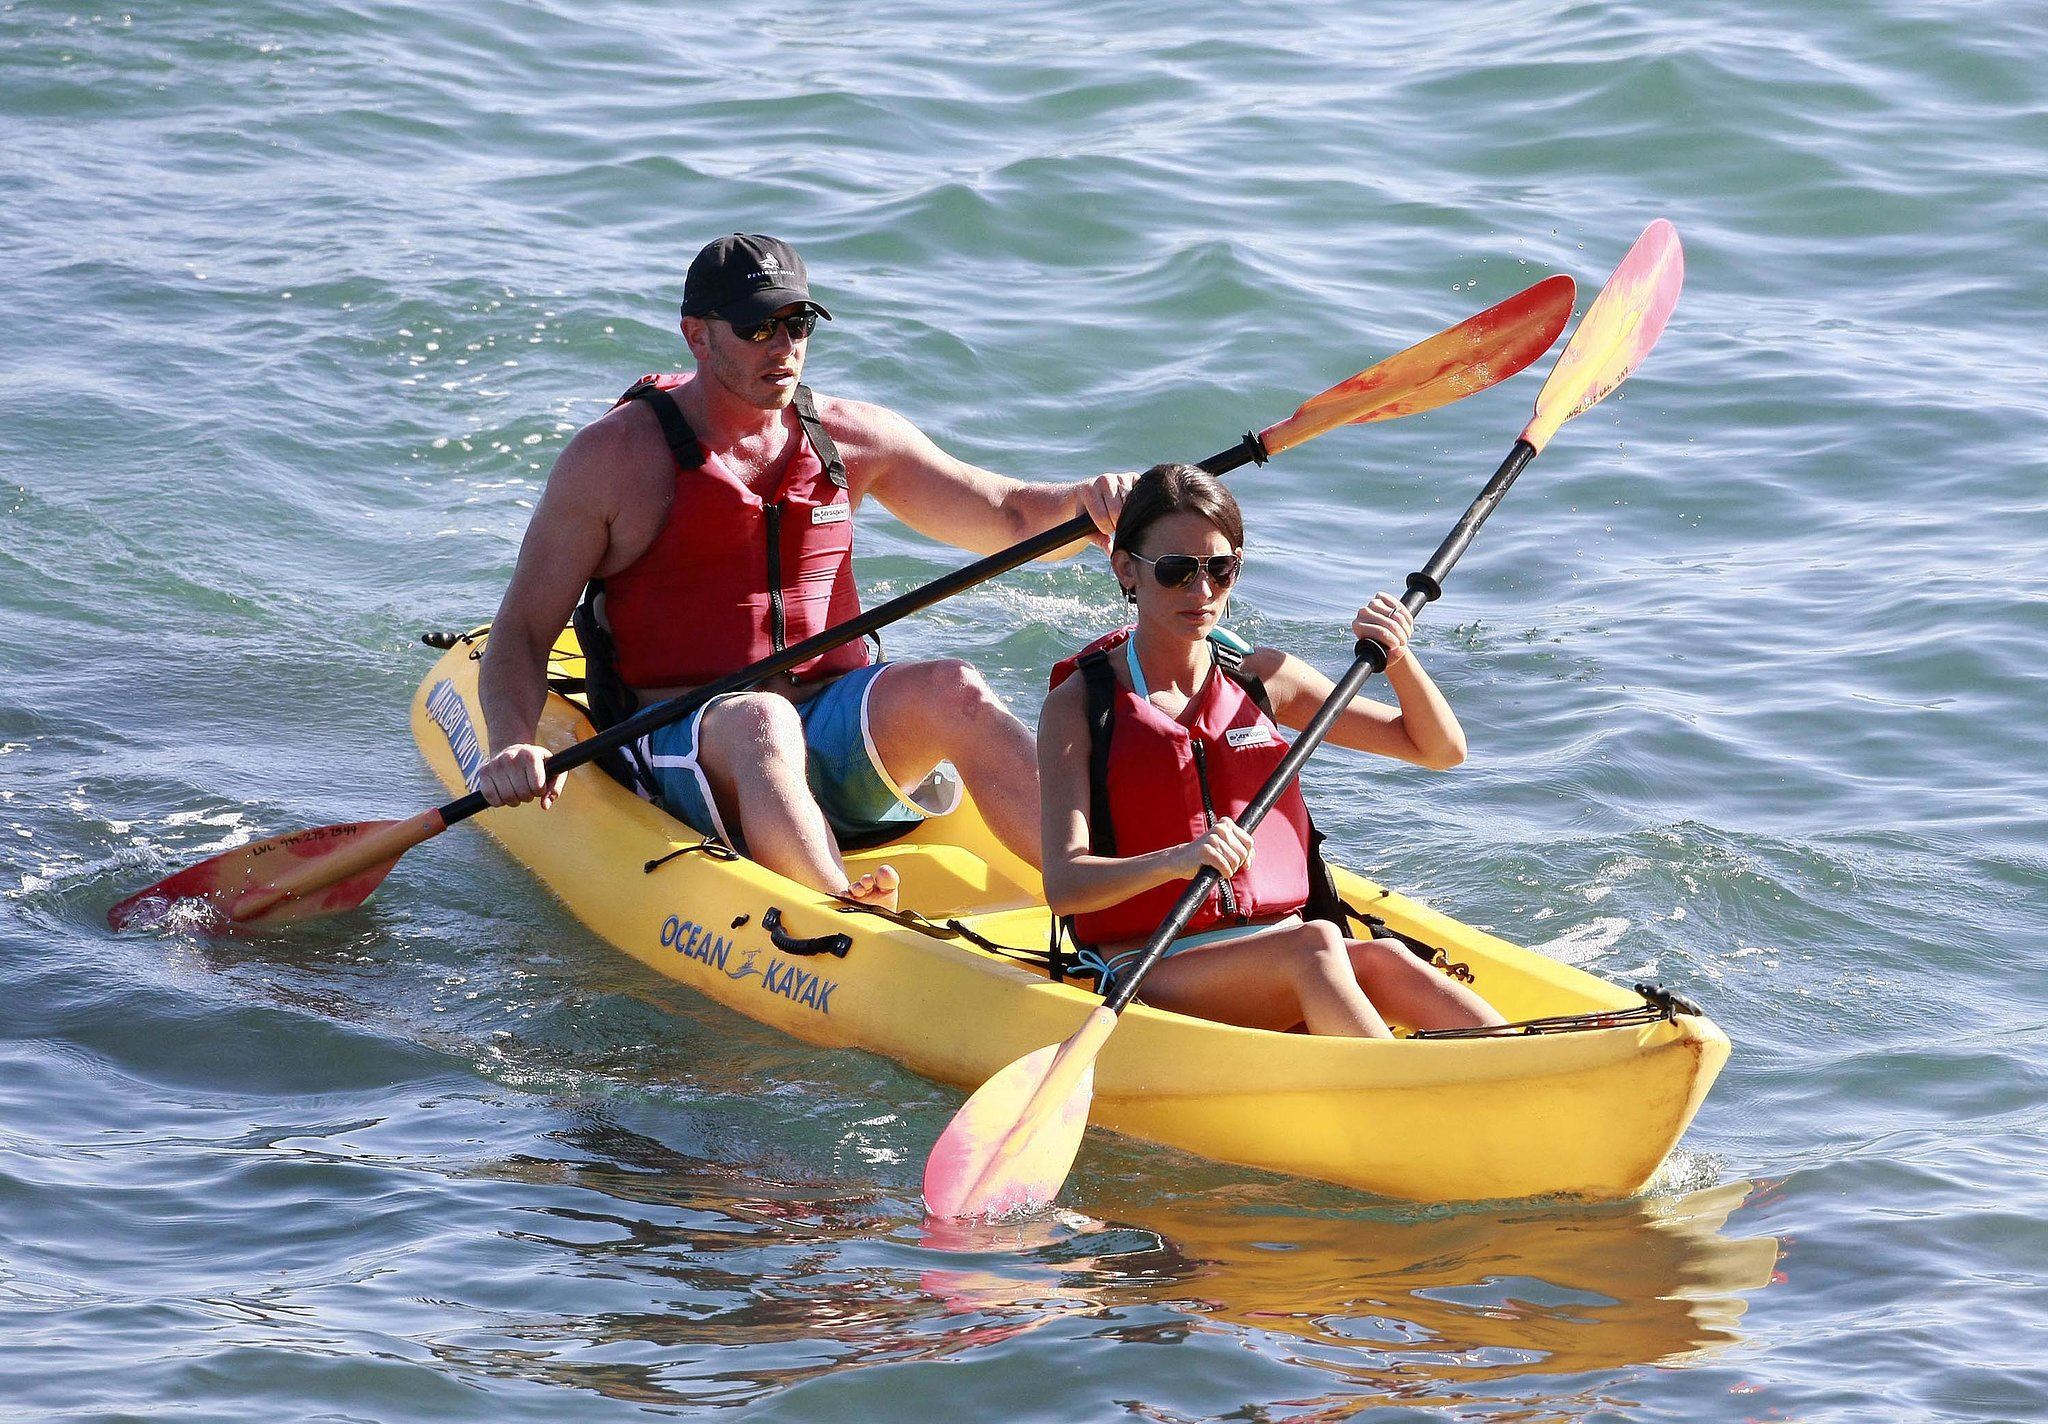 Ian Ziering and Erin Ludwig went kayaking in Newport Beach after tying the knot there in May 2010.